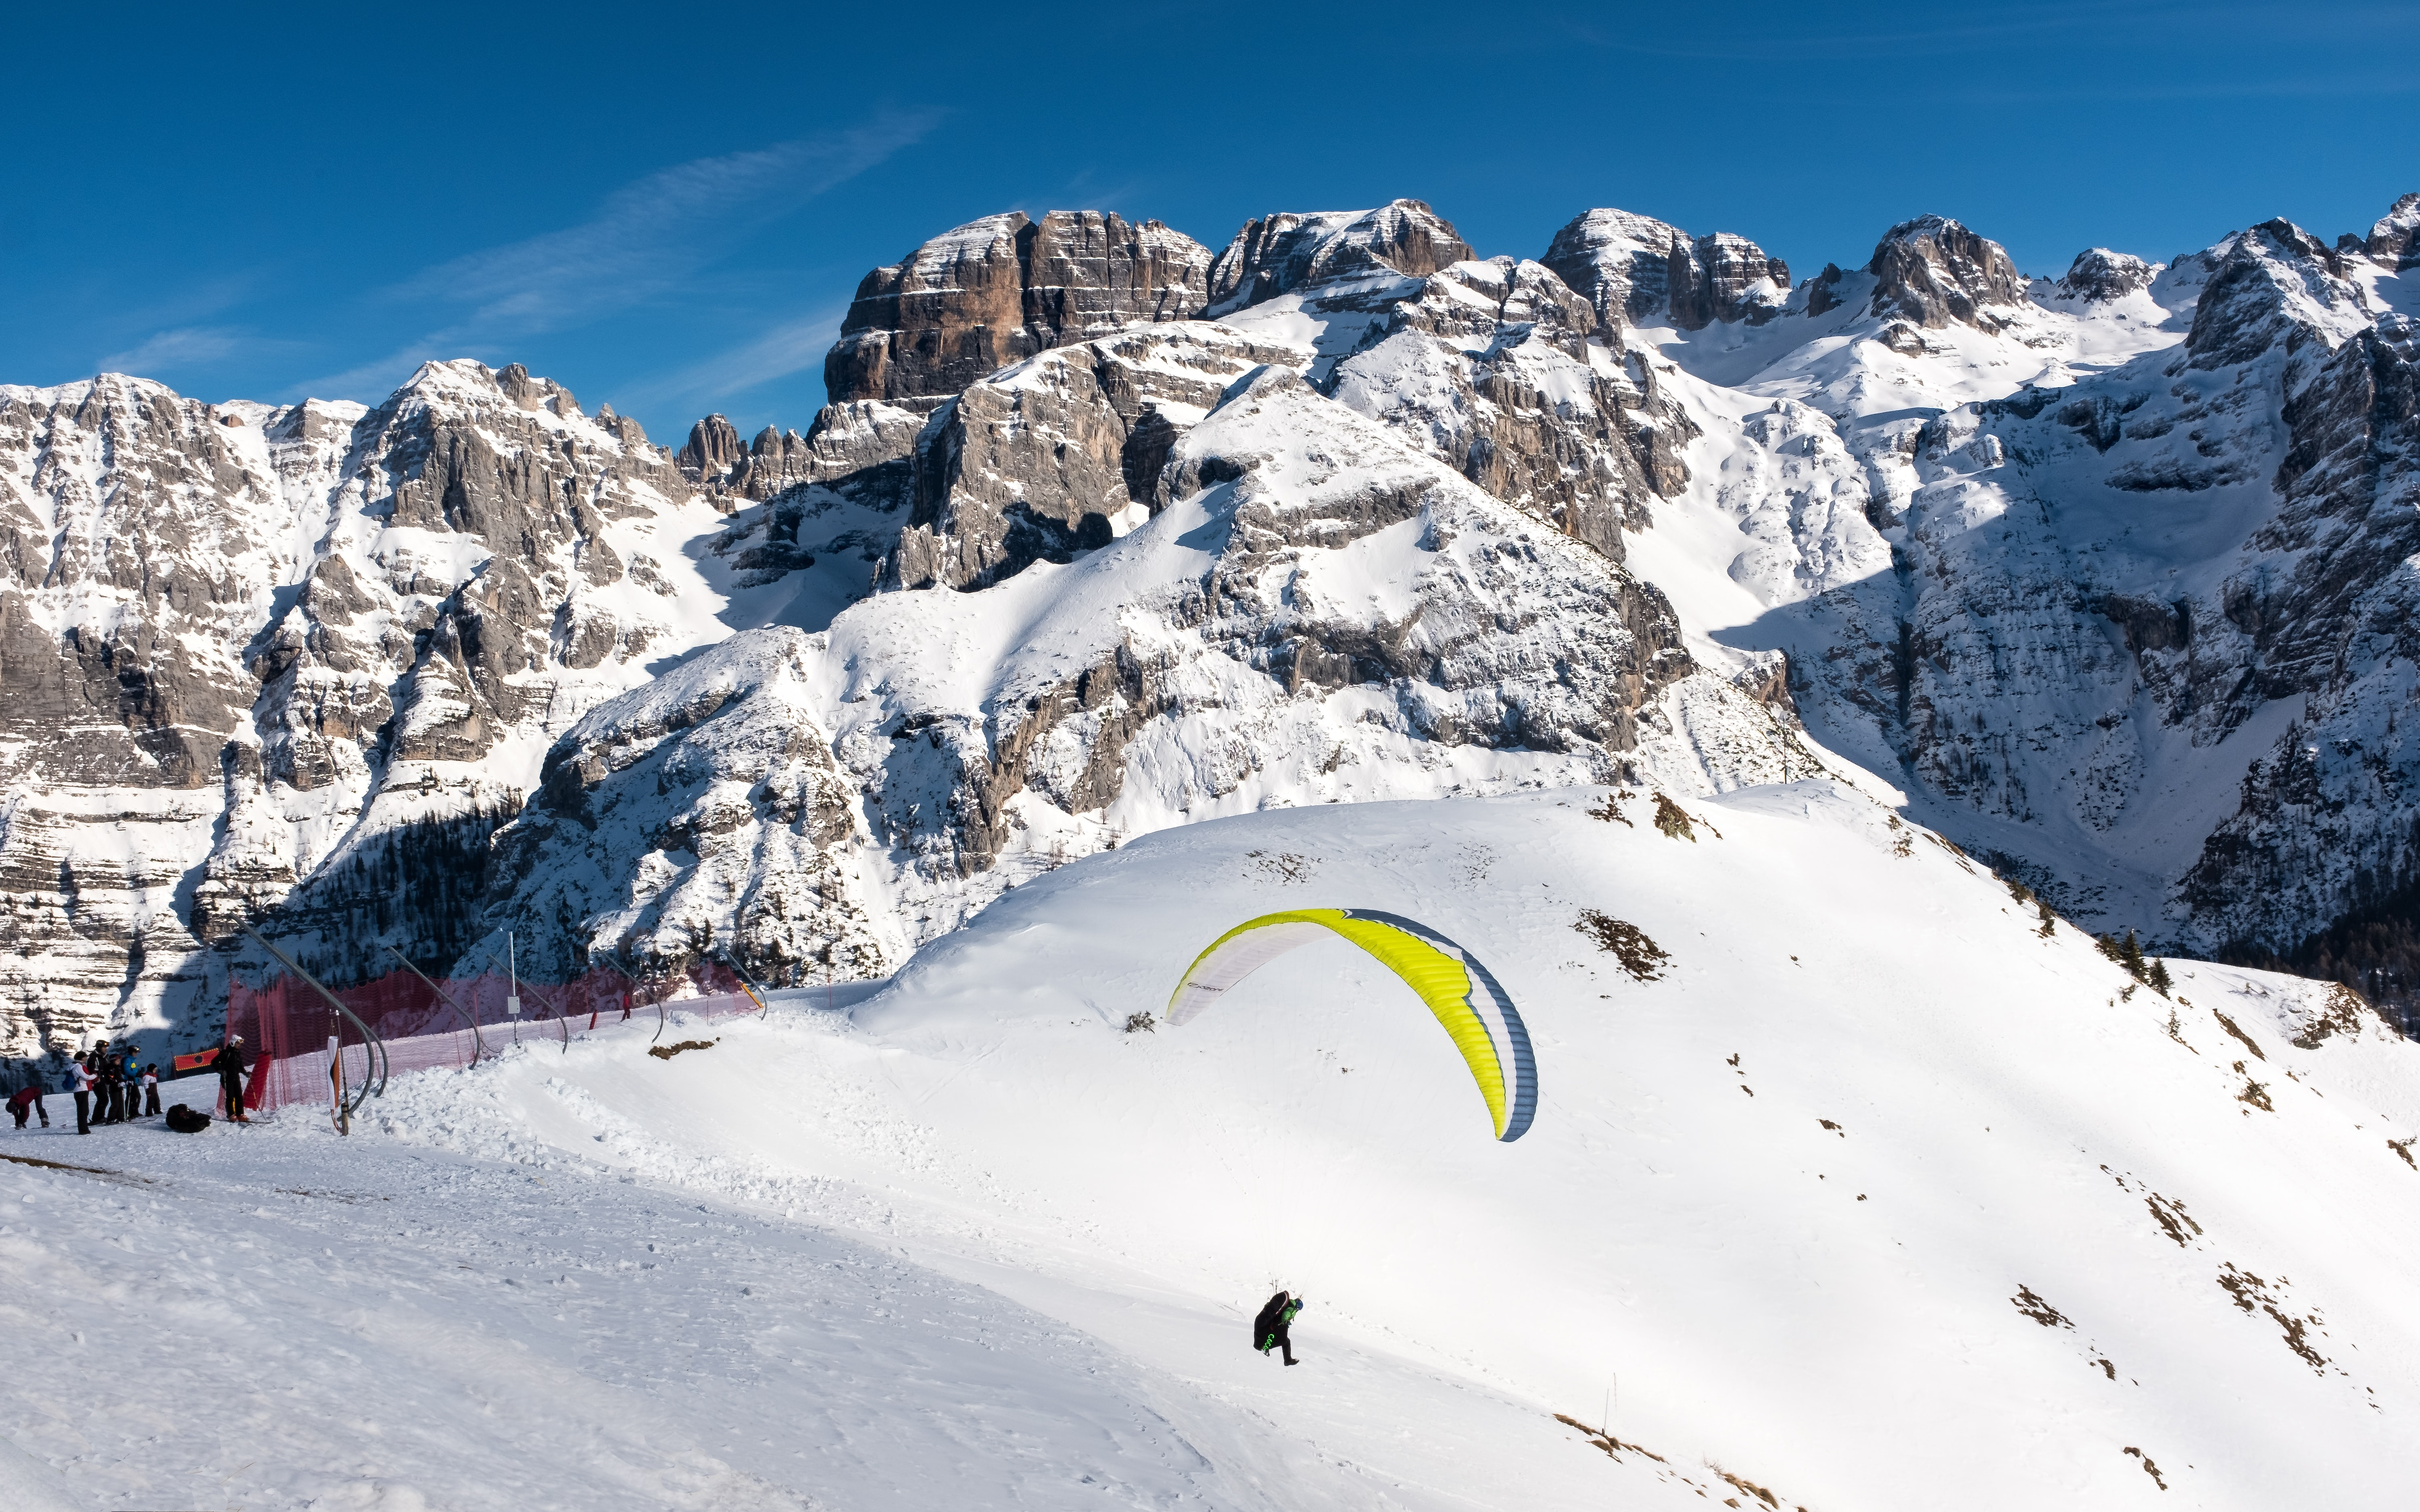 person paragliding above mountain with snow